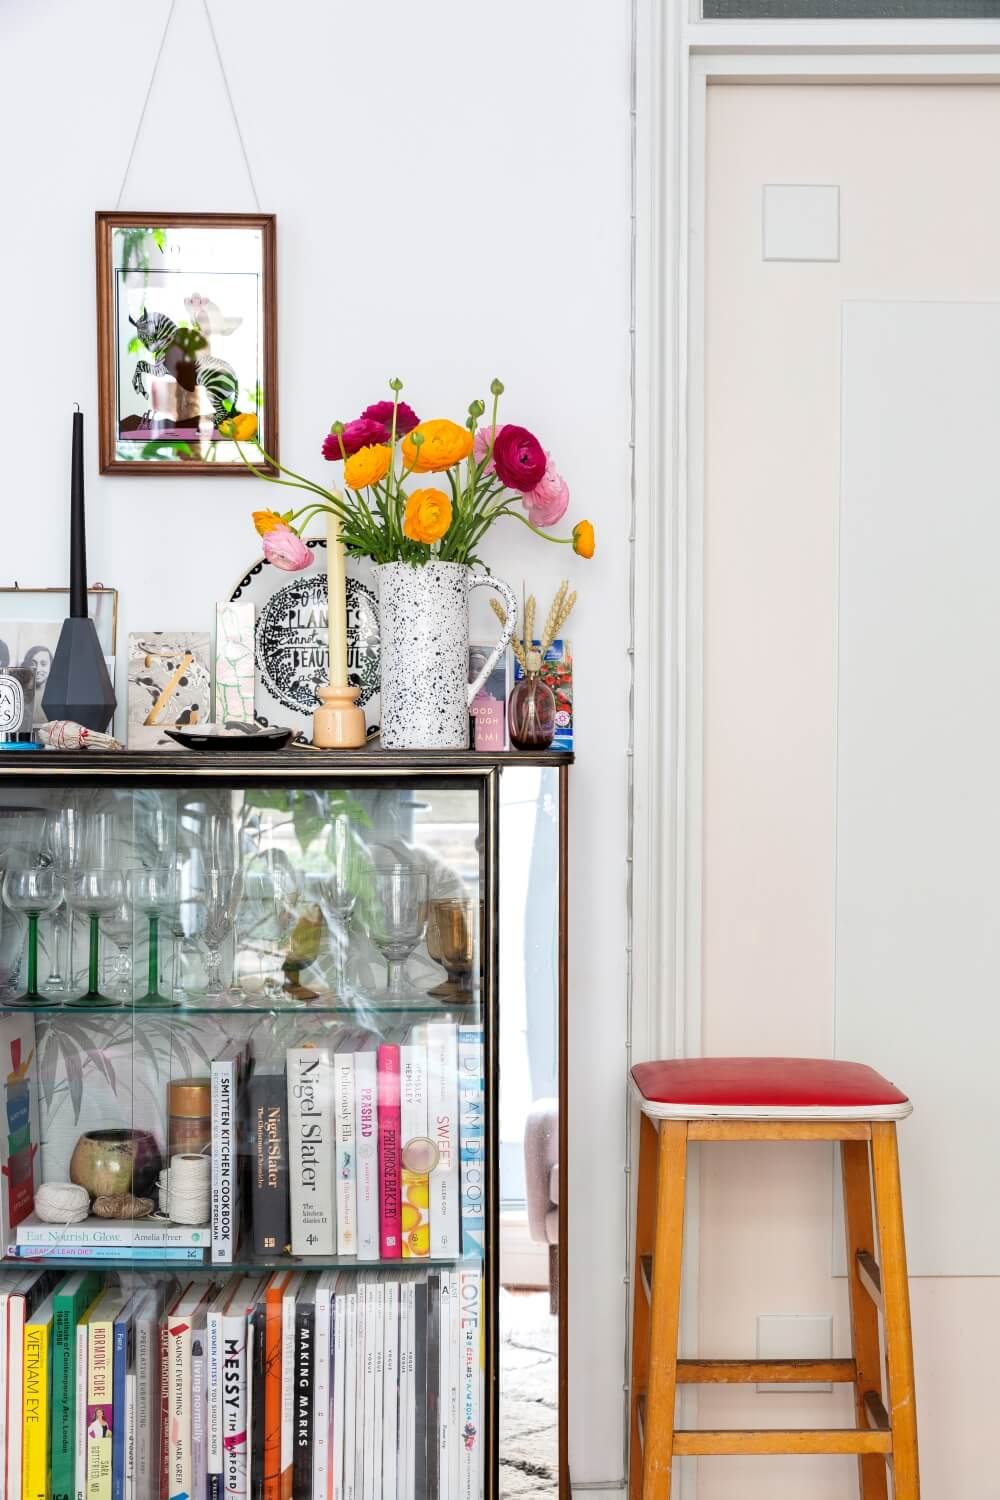 Glass vintage sideboard filled with books and other ornaments.